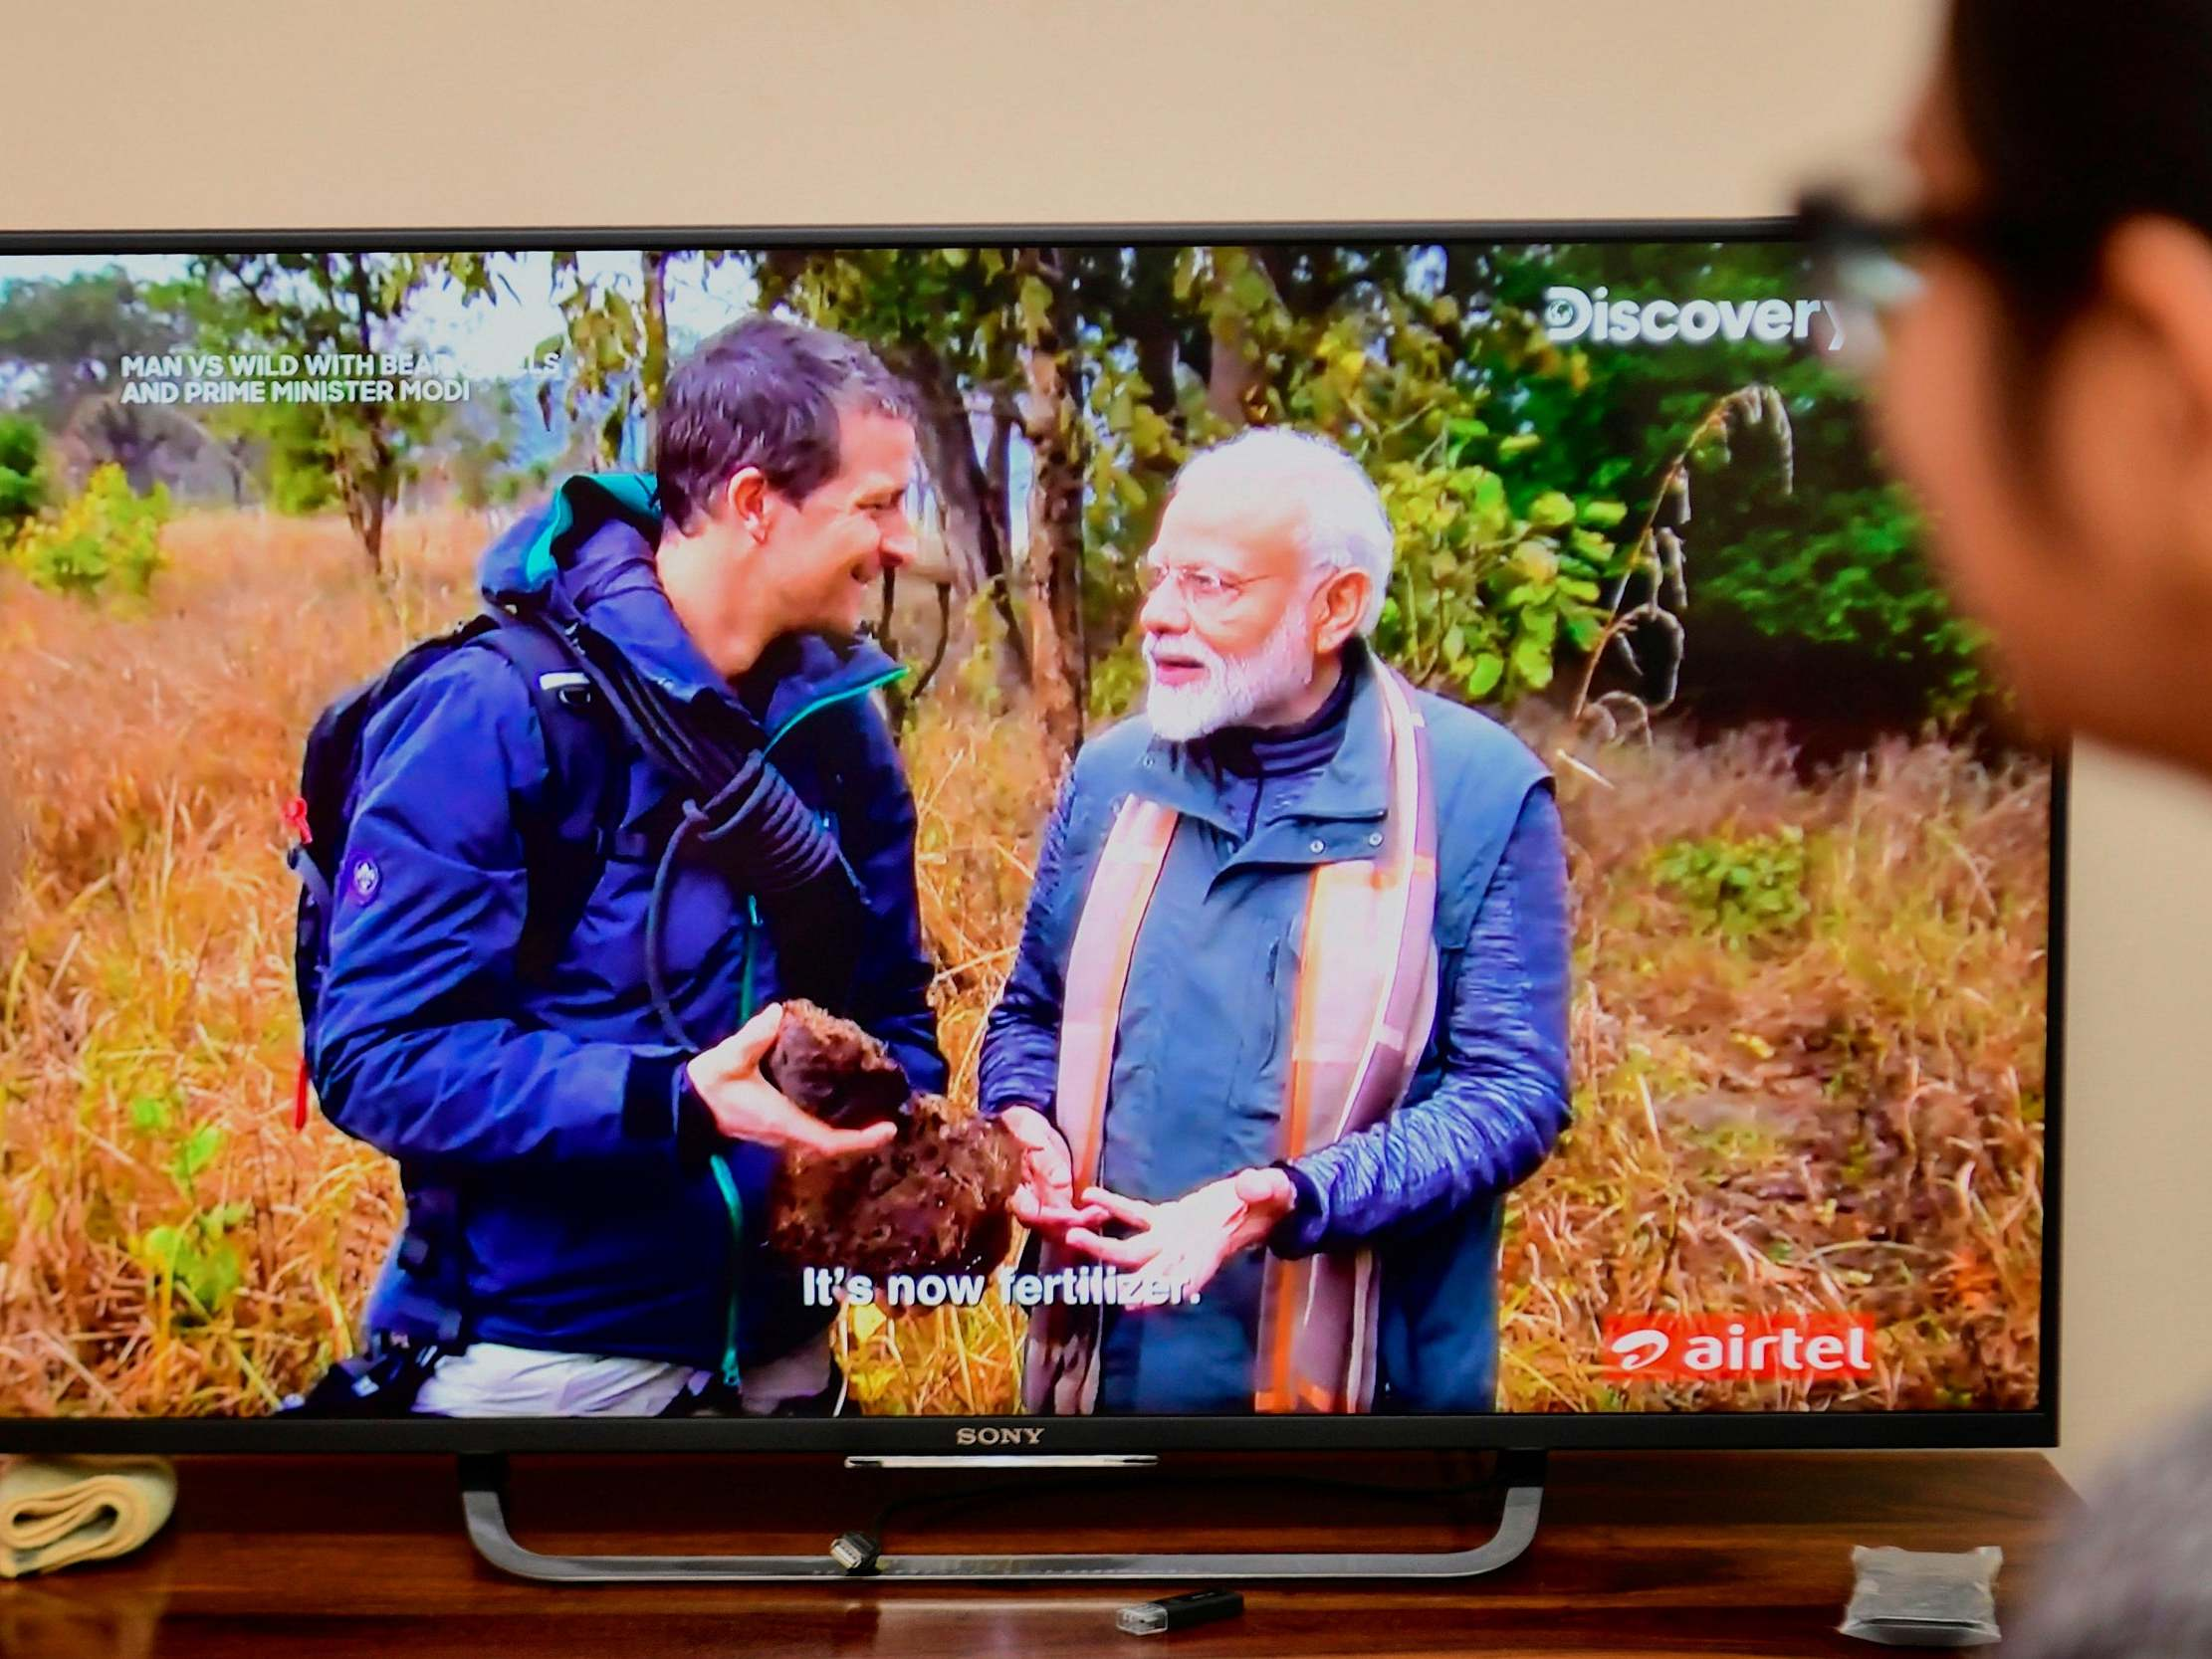 Narendra Modi mocked over Bear Grylls' TV special appearance, after claiming to have 'never experienced fear'